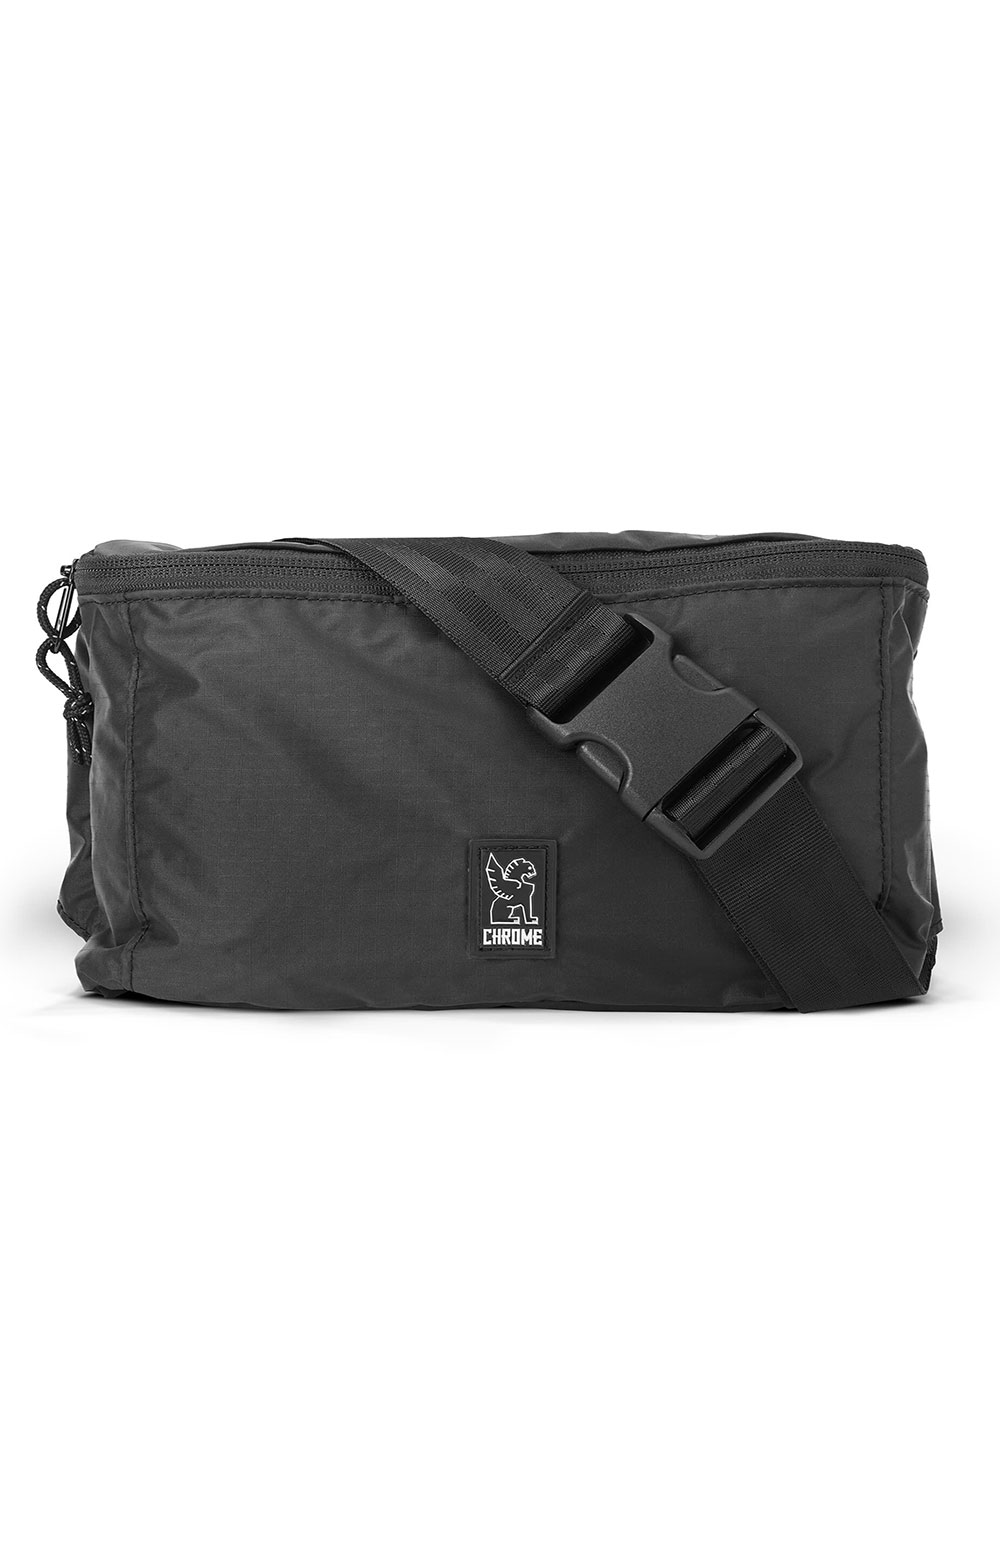 (BG-300-BK) Packable Waistpack - Black